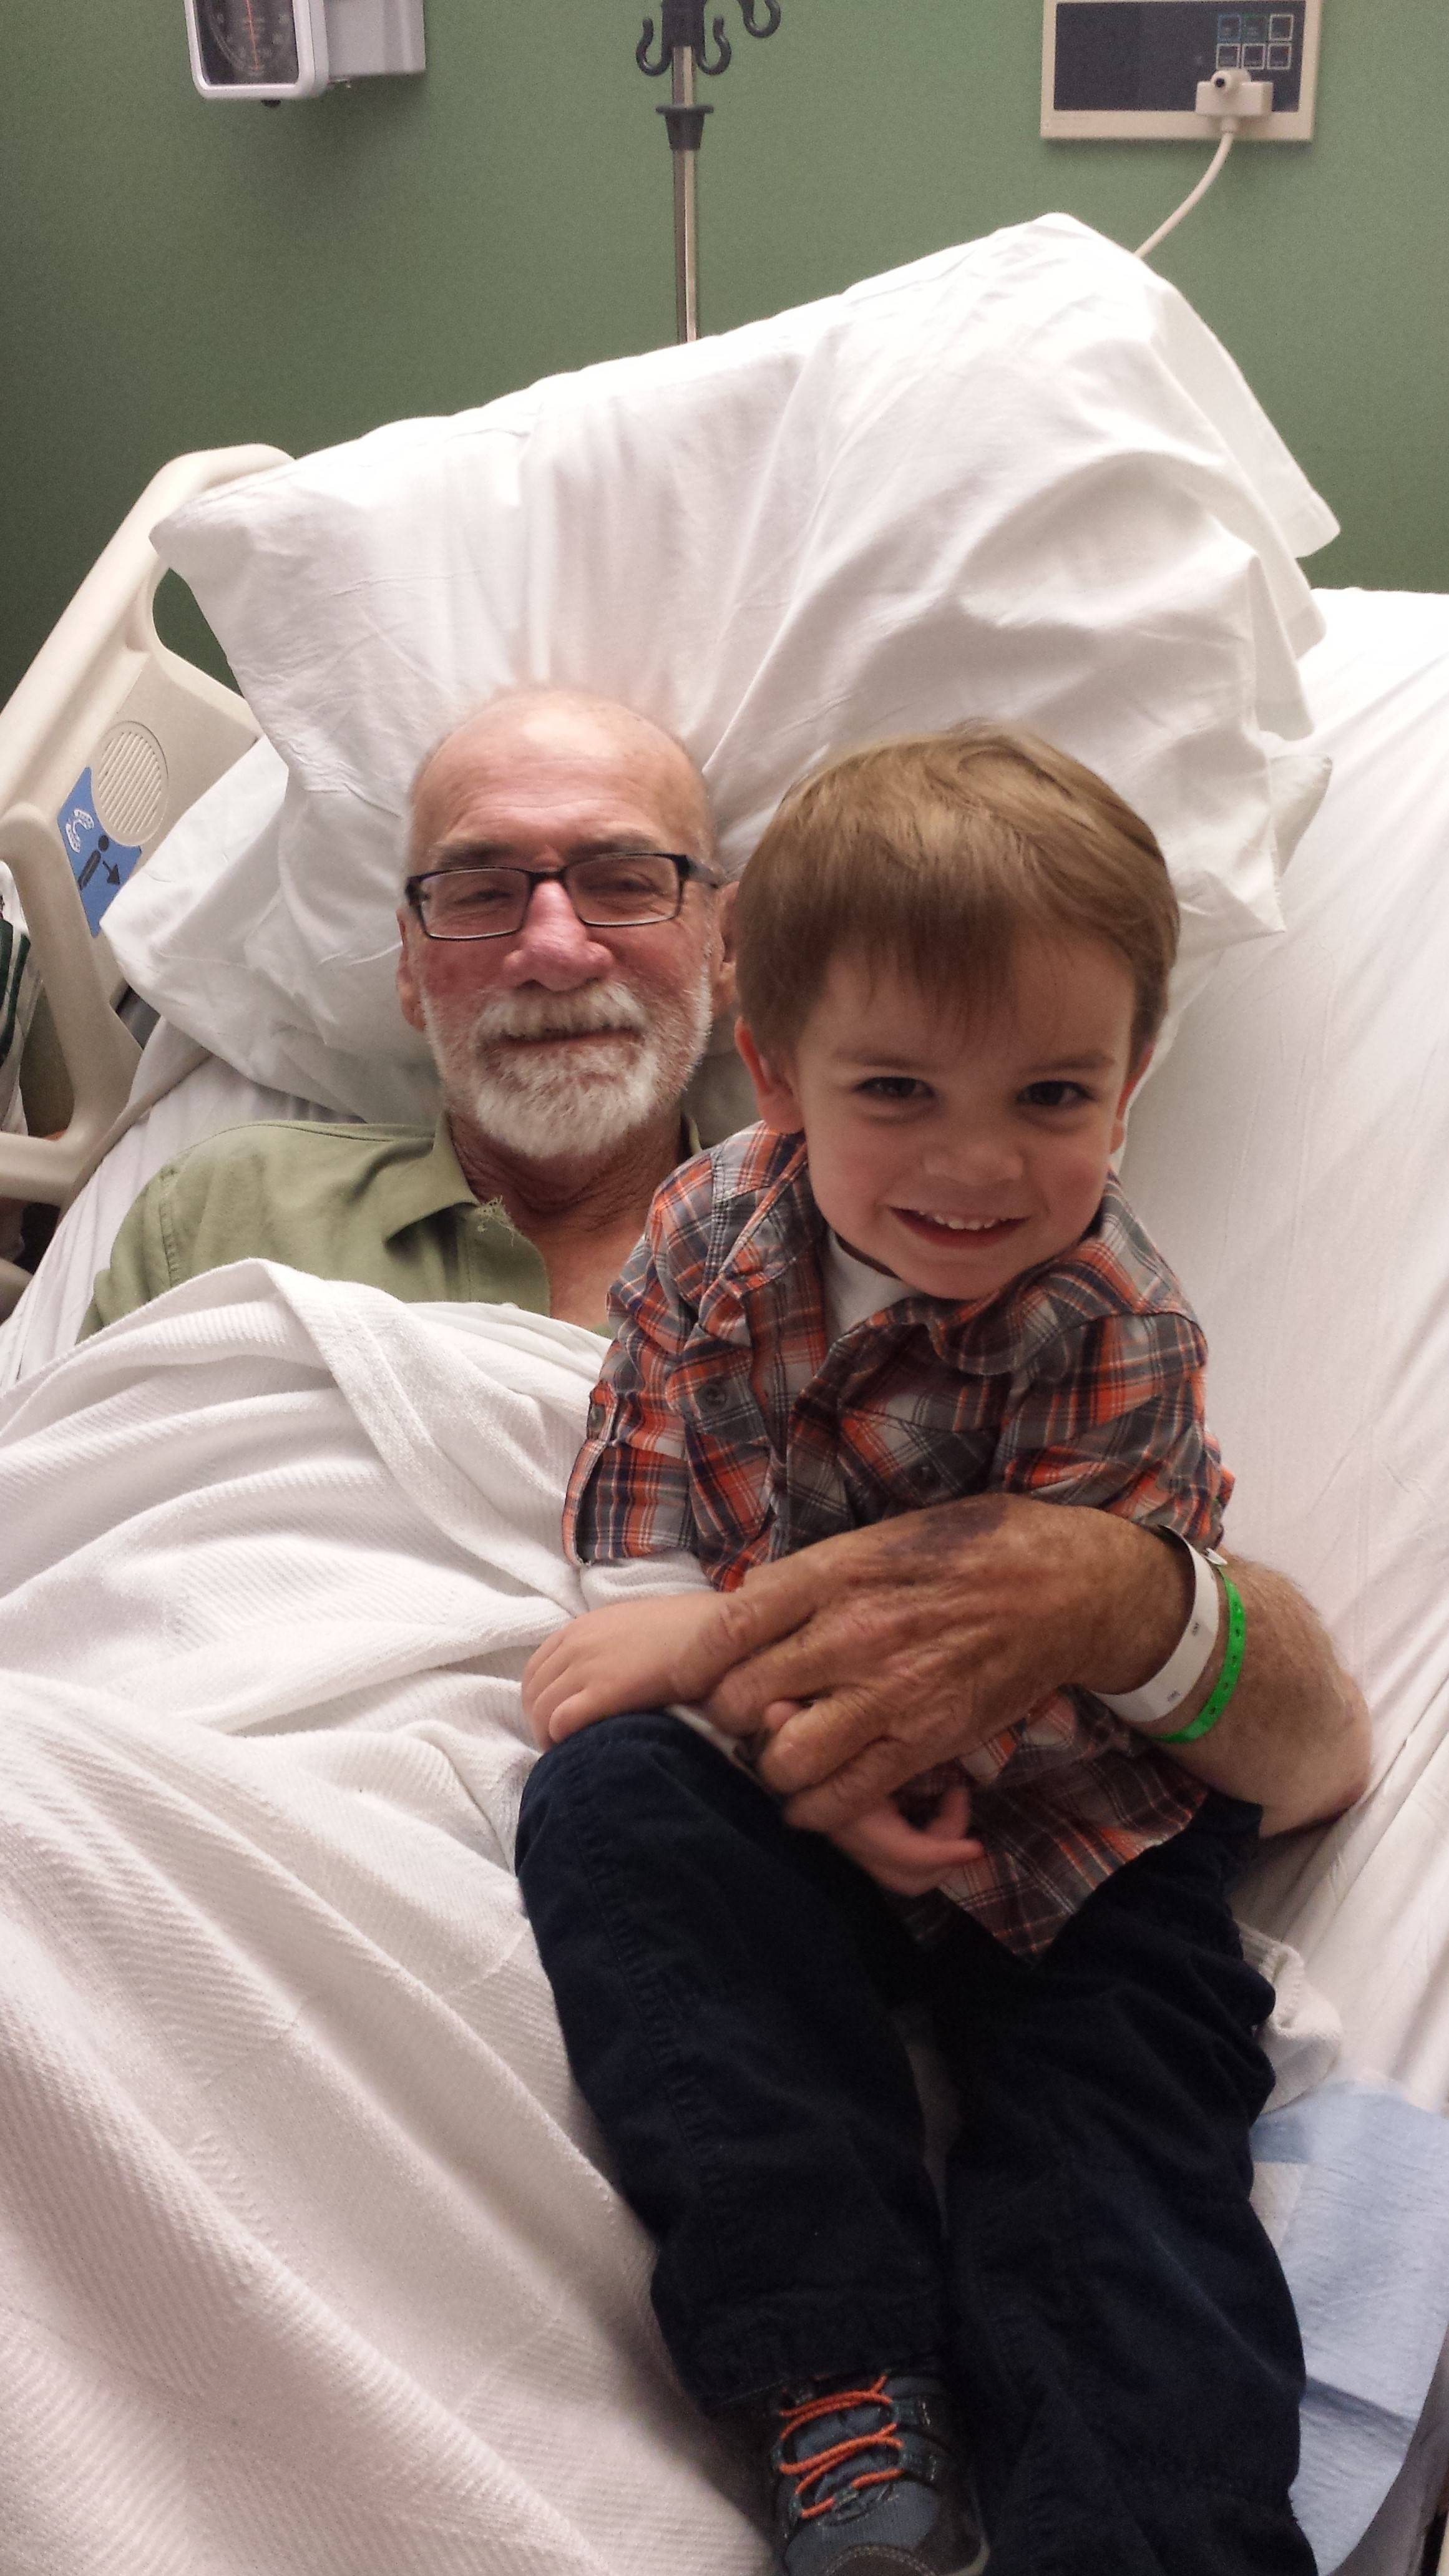 "John ""Jack"" Dempsey, 75, with his grandson Jackson, 3, recovers in the hospital after suffering a heart attack while driving a semitrailer truck in Bartlett."